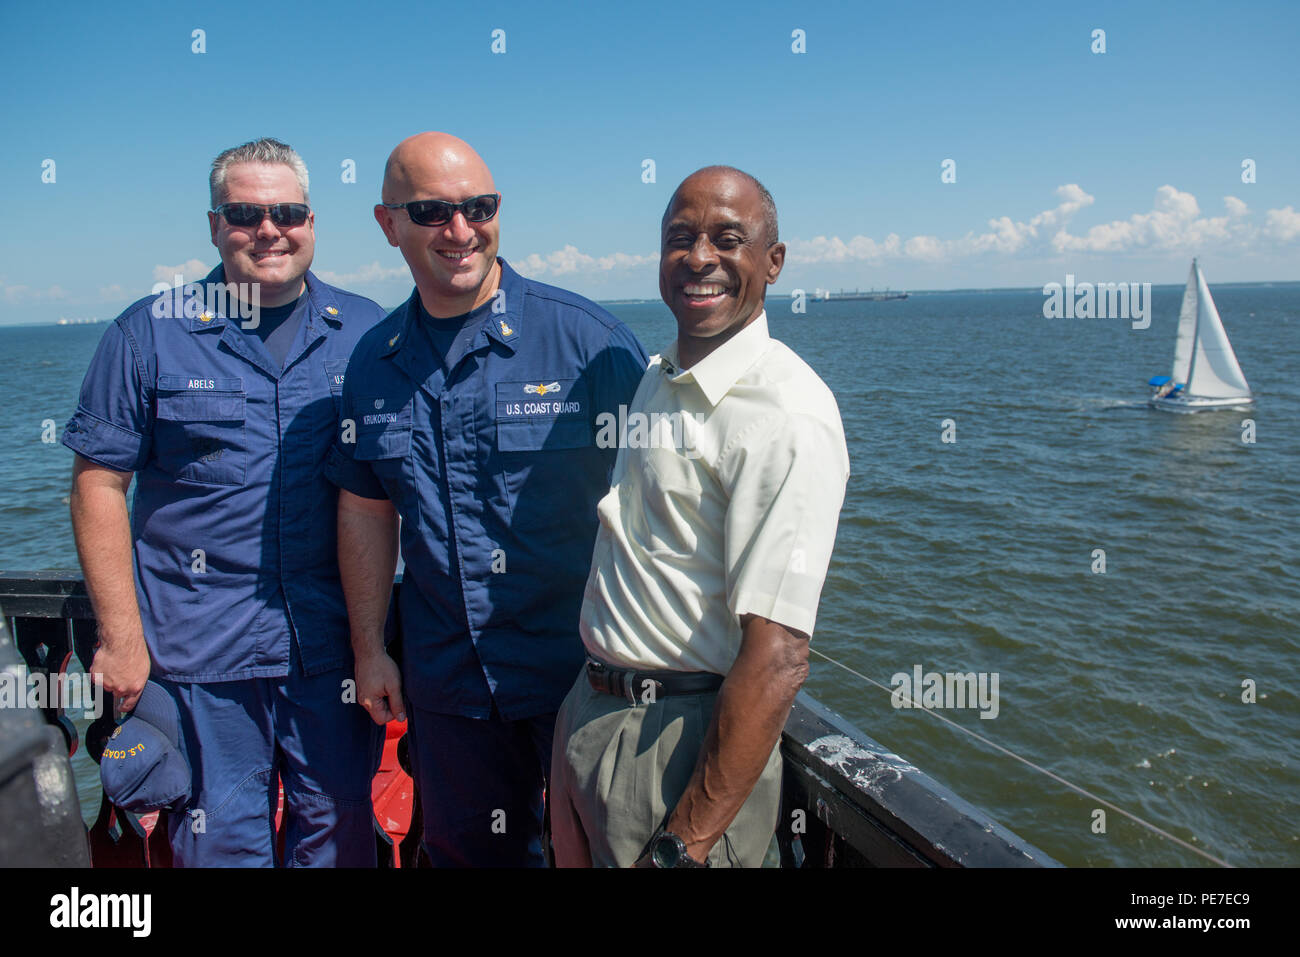 (Left to right) Petty Officer 1st Class James Ables, public affiars officer at station Annapolis, Senior Chief Petty Officer William Krukowski, officer in charge of Coast Guard Station Annapolis, and John White pose for a photo while on the Thomas Point Shoal Lighthouse Sept. 9, 2015. (U.S. Coast Guard photo by Petty Officer 3rd Class David Marin) See more at: http://midatlantic.coastguard.dodlive.mil/2015/10/a-guiding-light/#sthash.QgppGlW7.dpuf - Stock Image